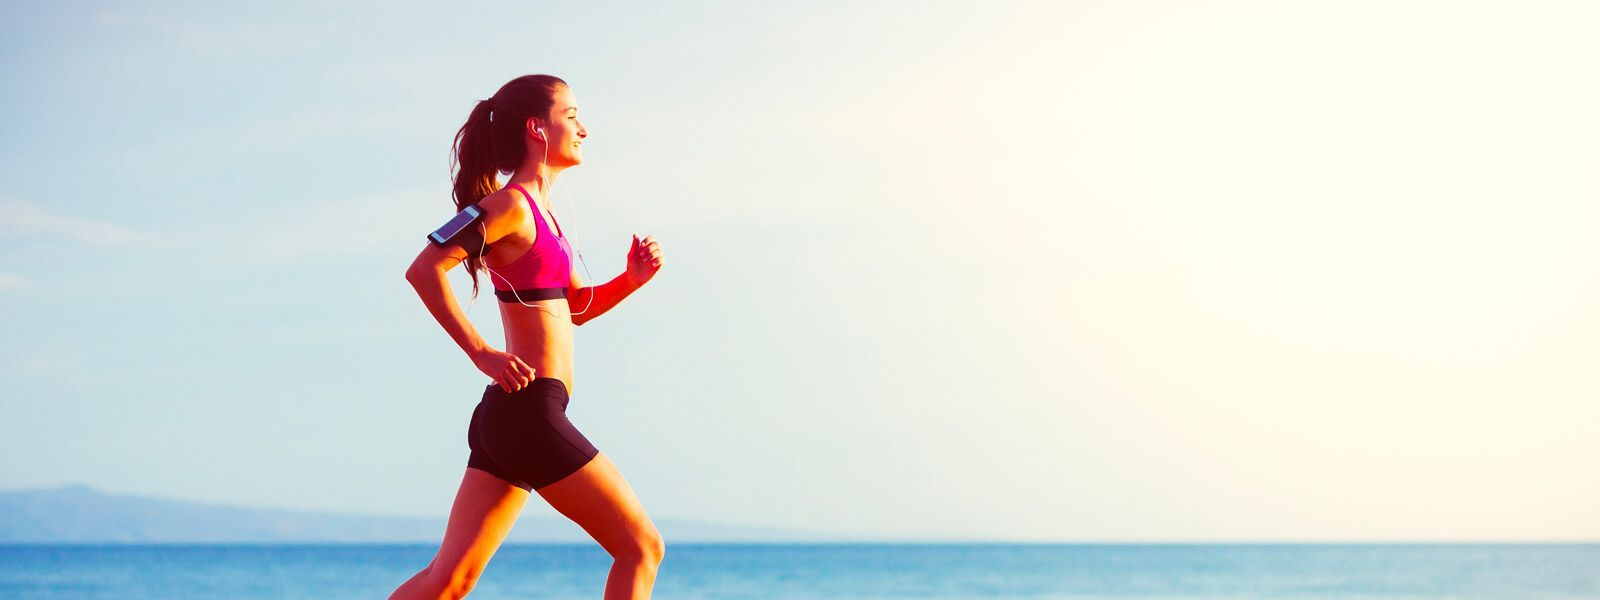 Exercising 30 minutes a day leads a better life, specialists at Hospitals CMQ in Puerto Vallarta & Riviera Nayarit says